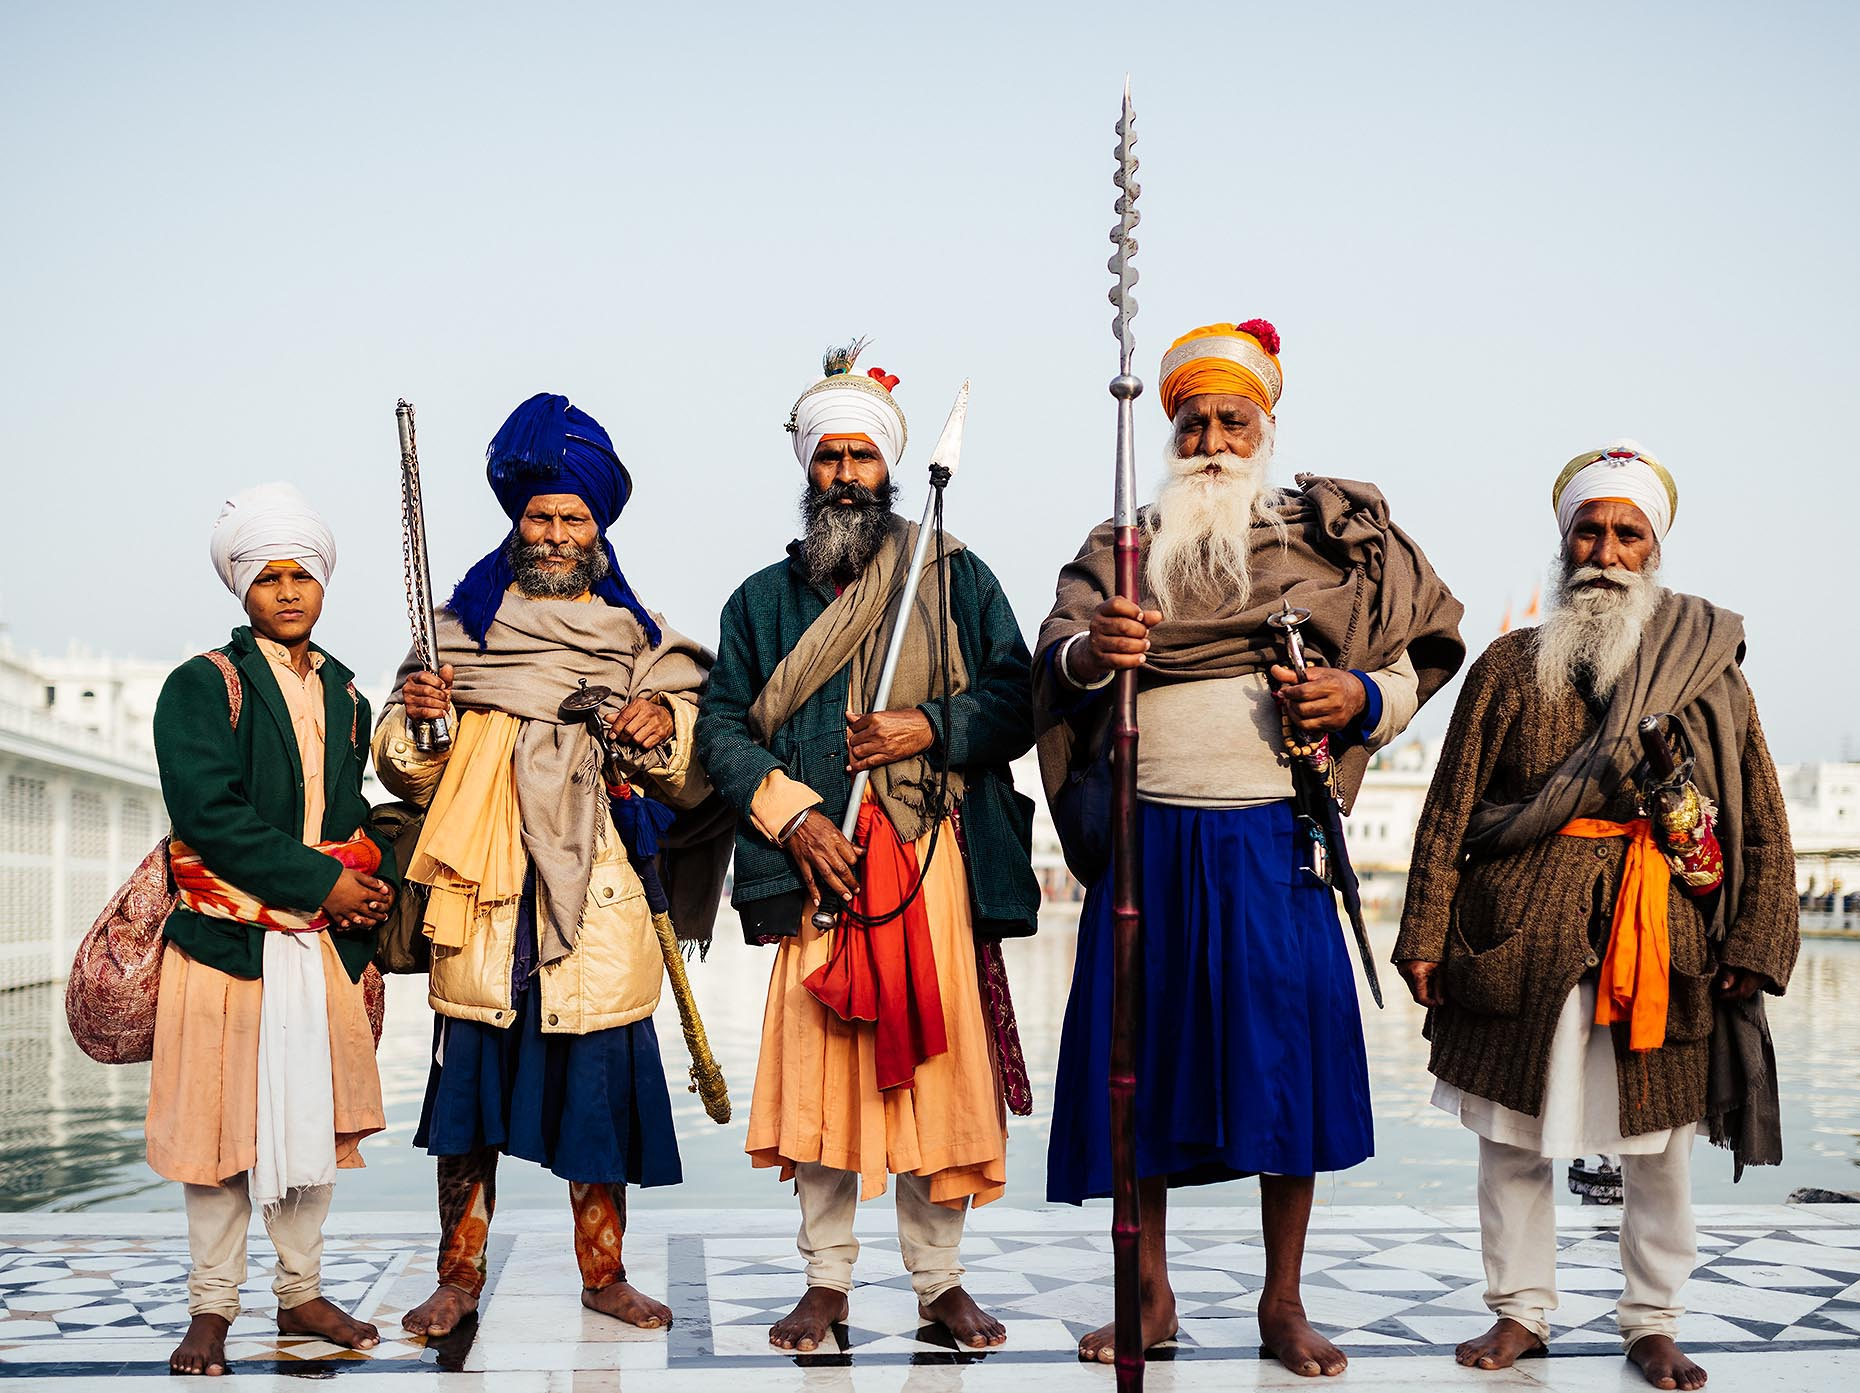 nihang-sikh-golden-temple-amritsar-punjab-india-travel-photographer-03